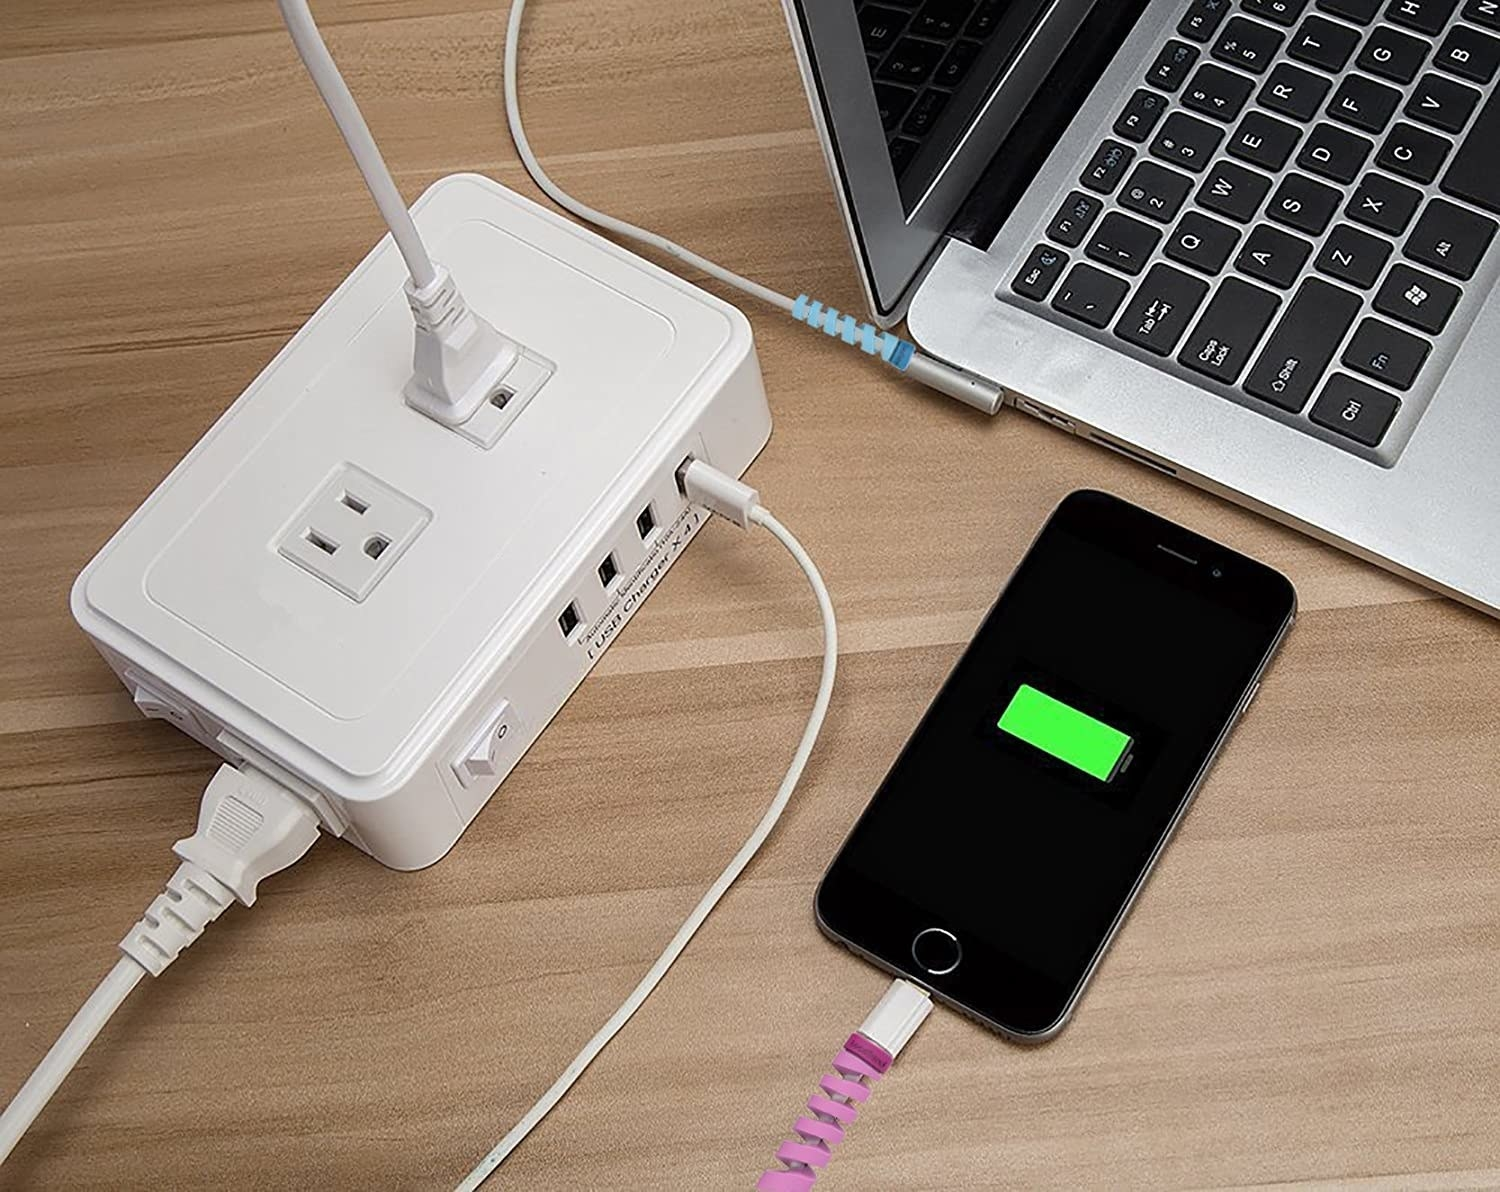 a laptop and a phone being charged by cords with cable protectors attached